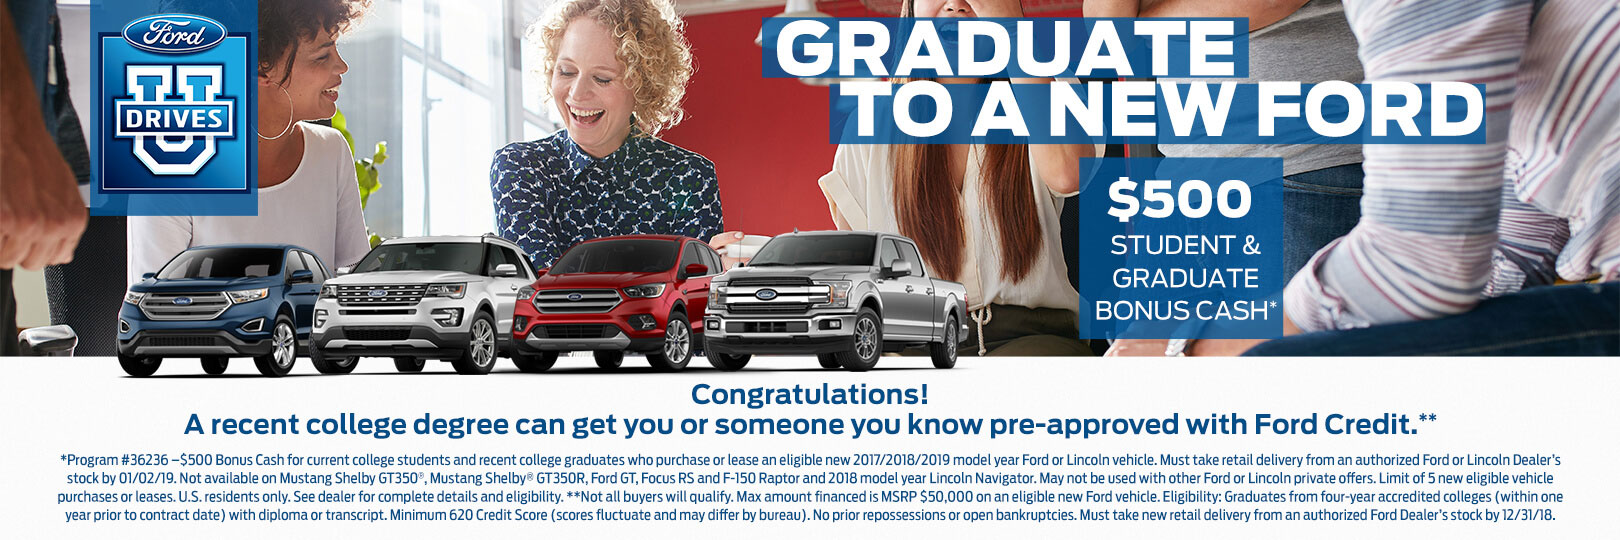 Fred Beans Ford West Chester >> Graduate To A New Ford At Fred Beans Ford Of West Chester